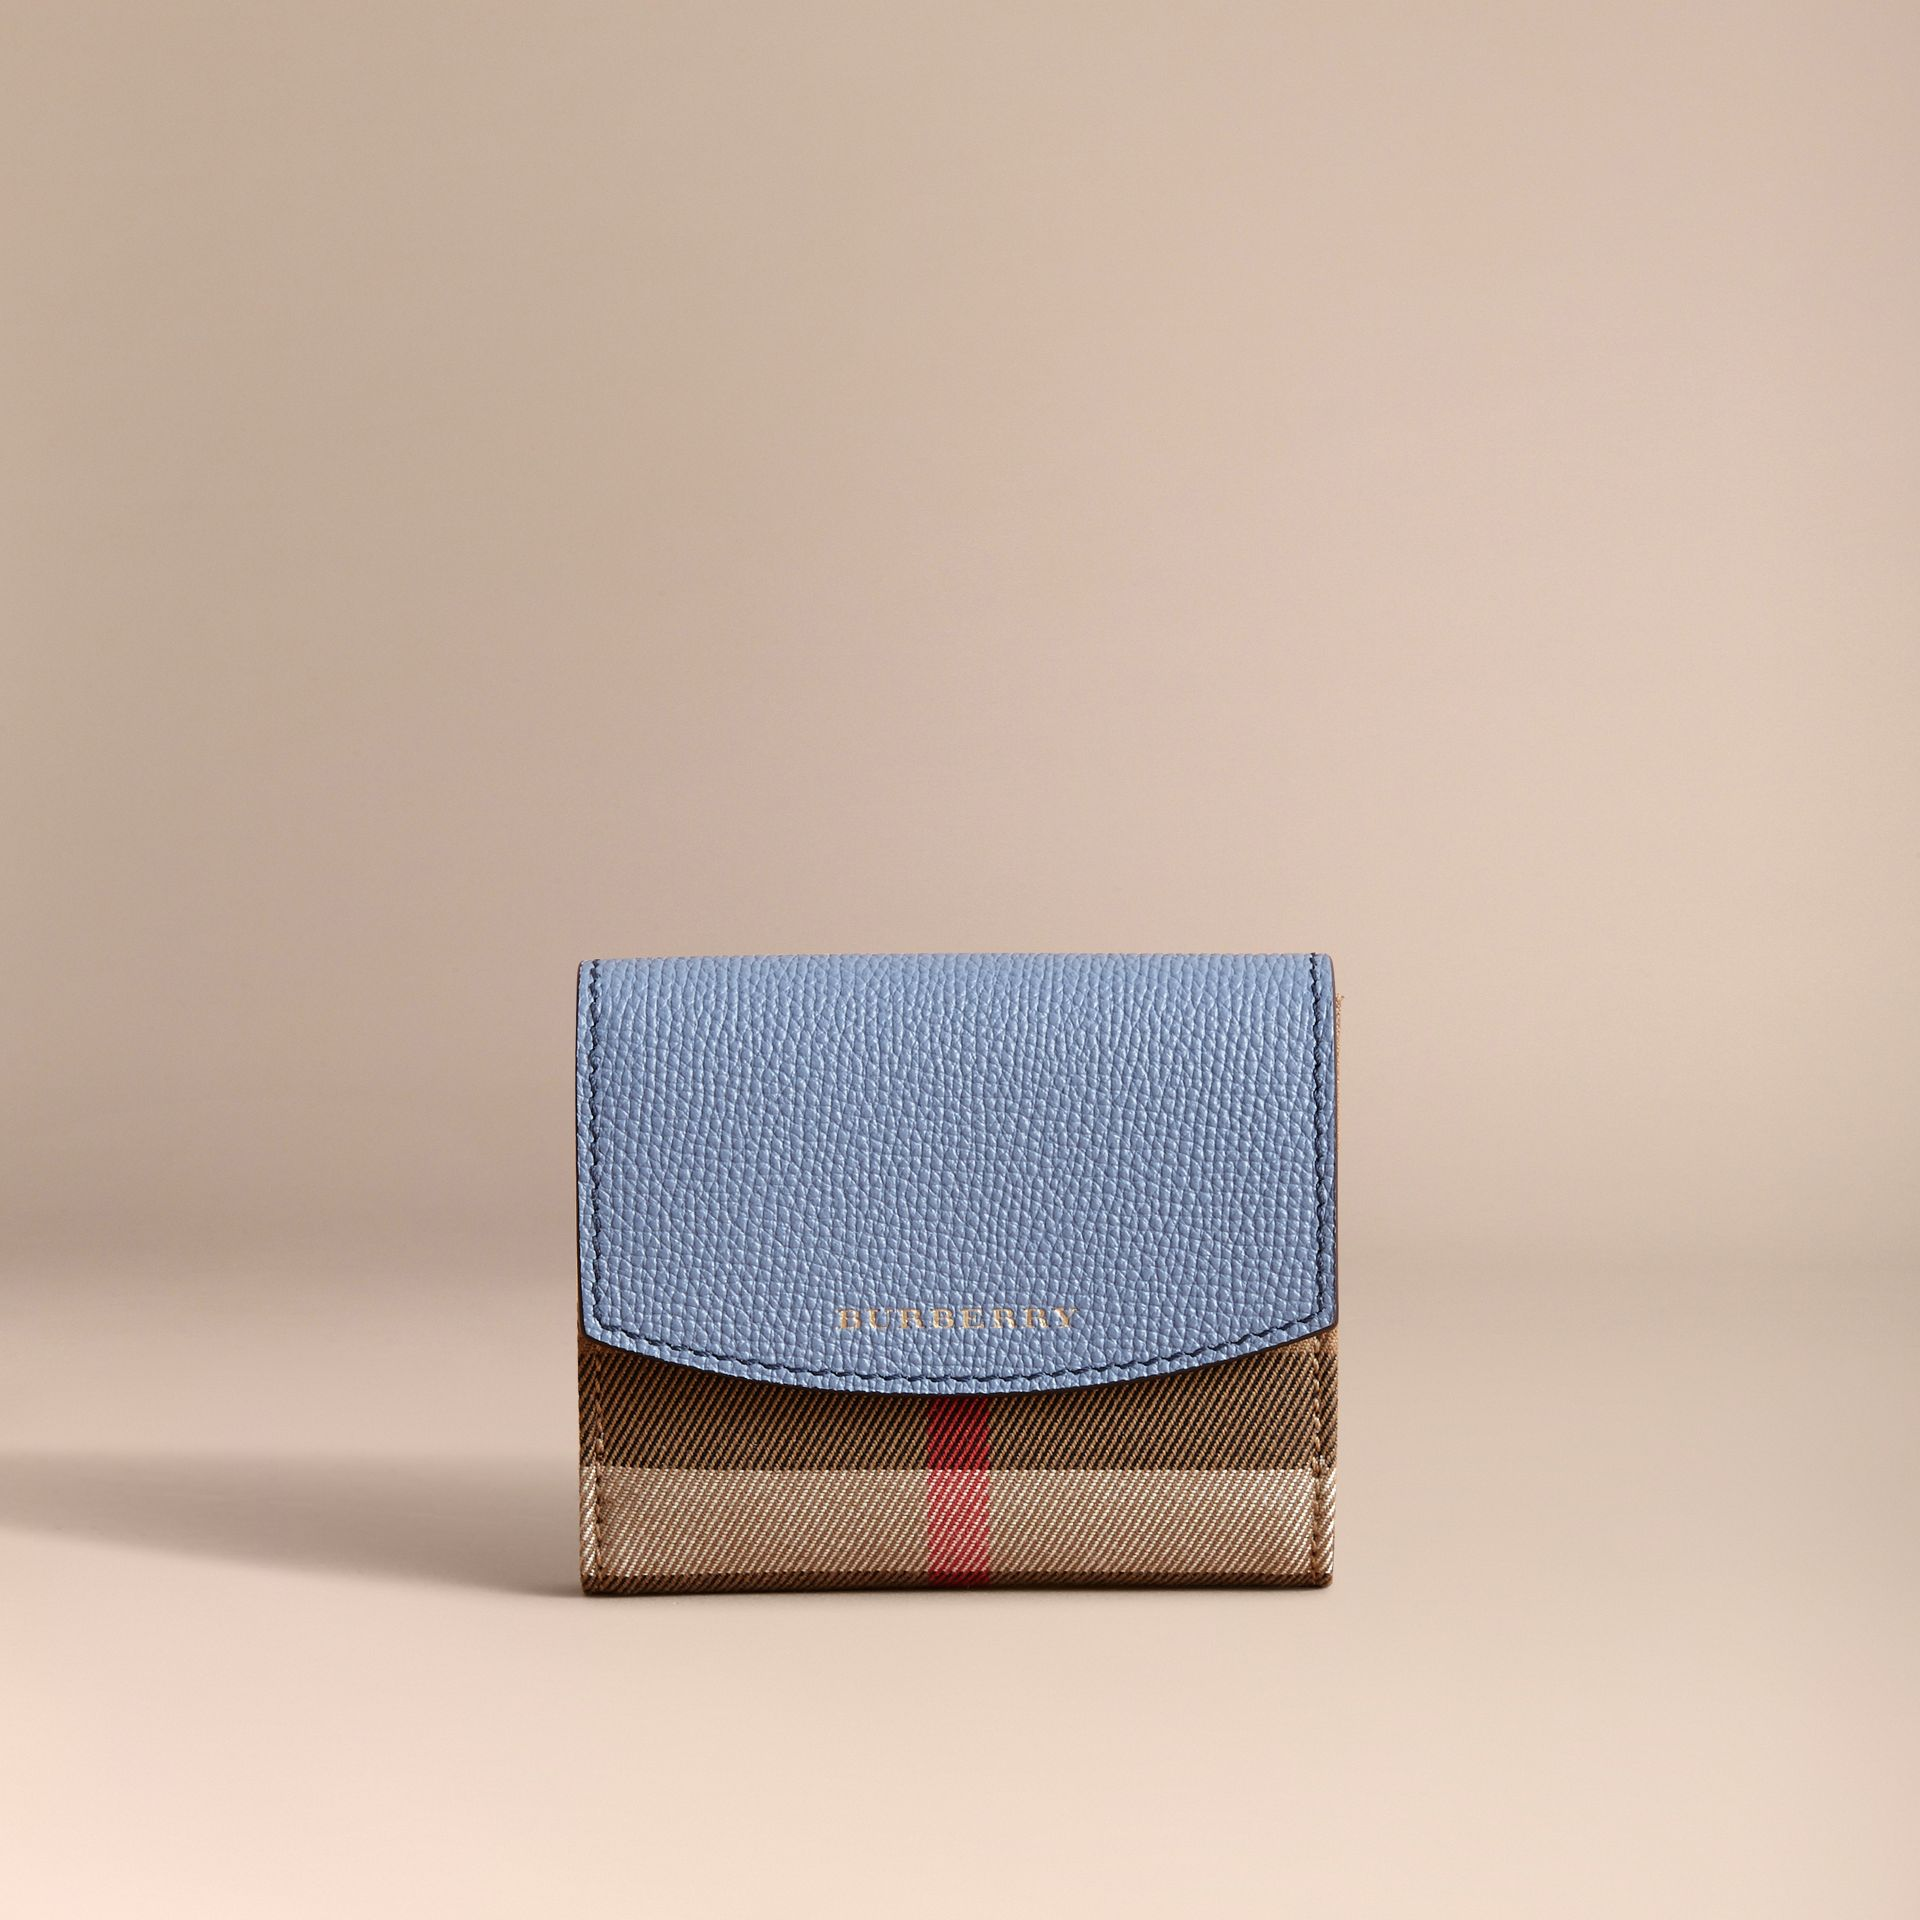 House Check and Leather Wallet in Slate Blue - Women | Burberry United Kingdom - gallery image 6